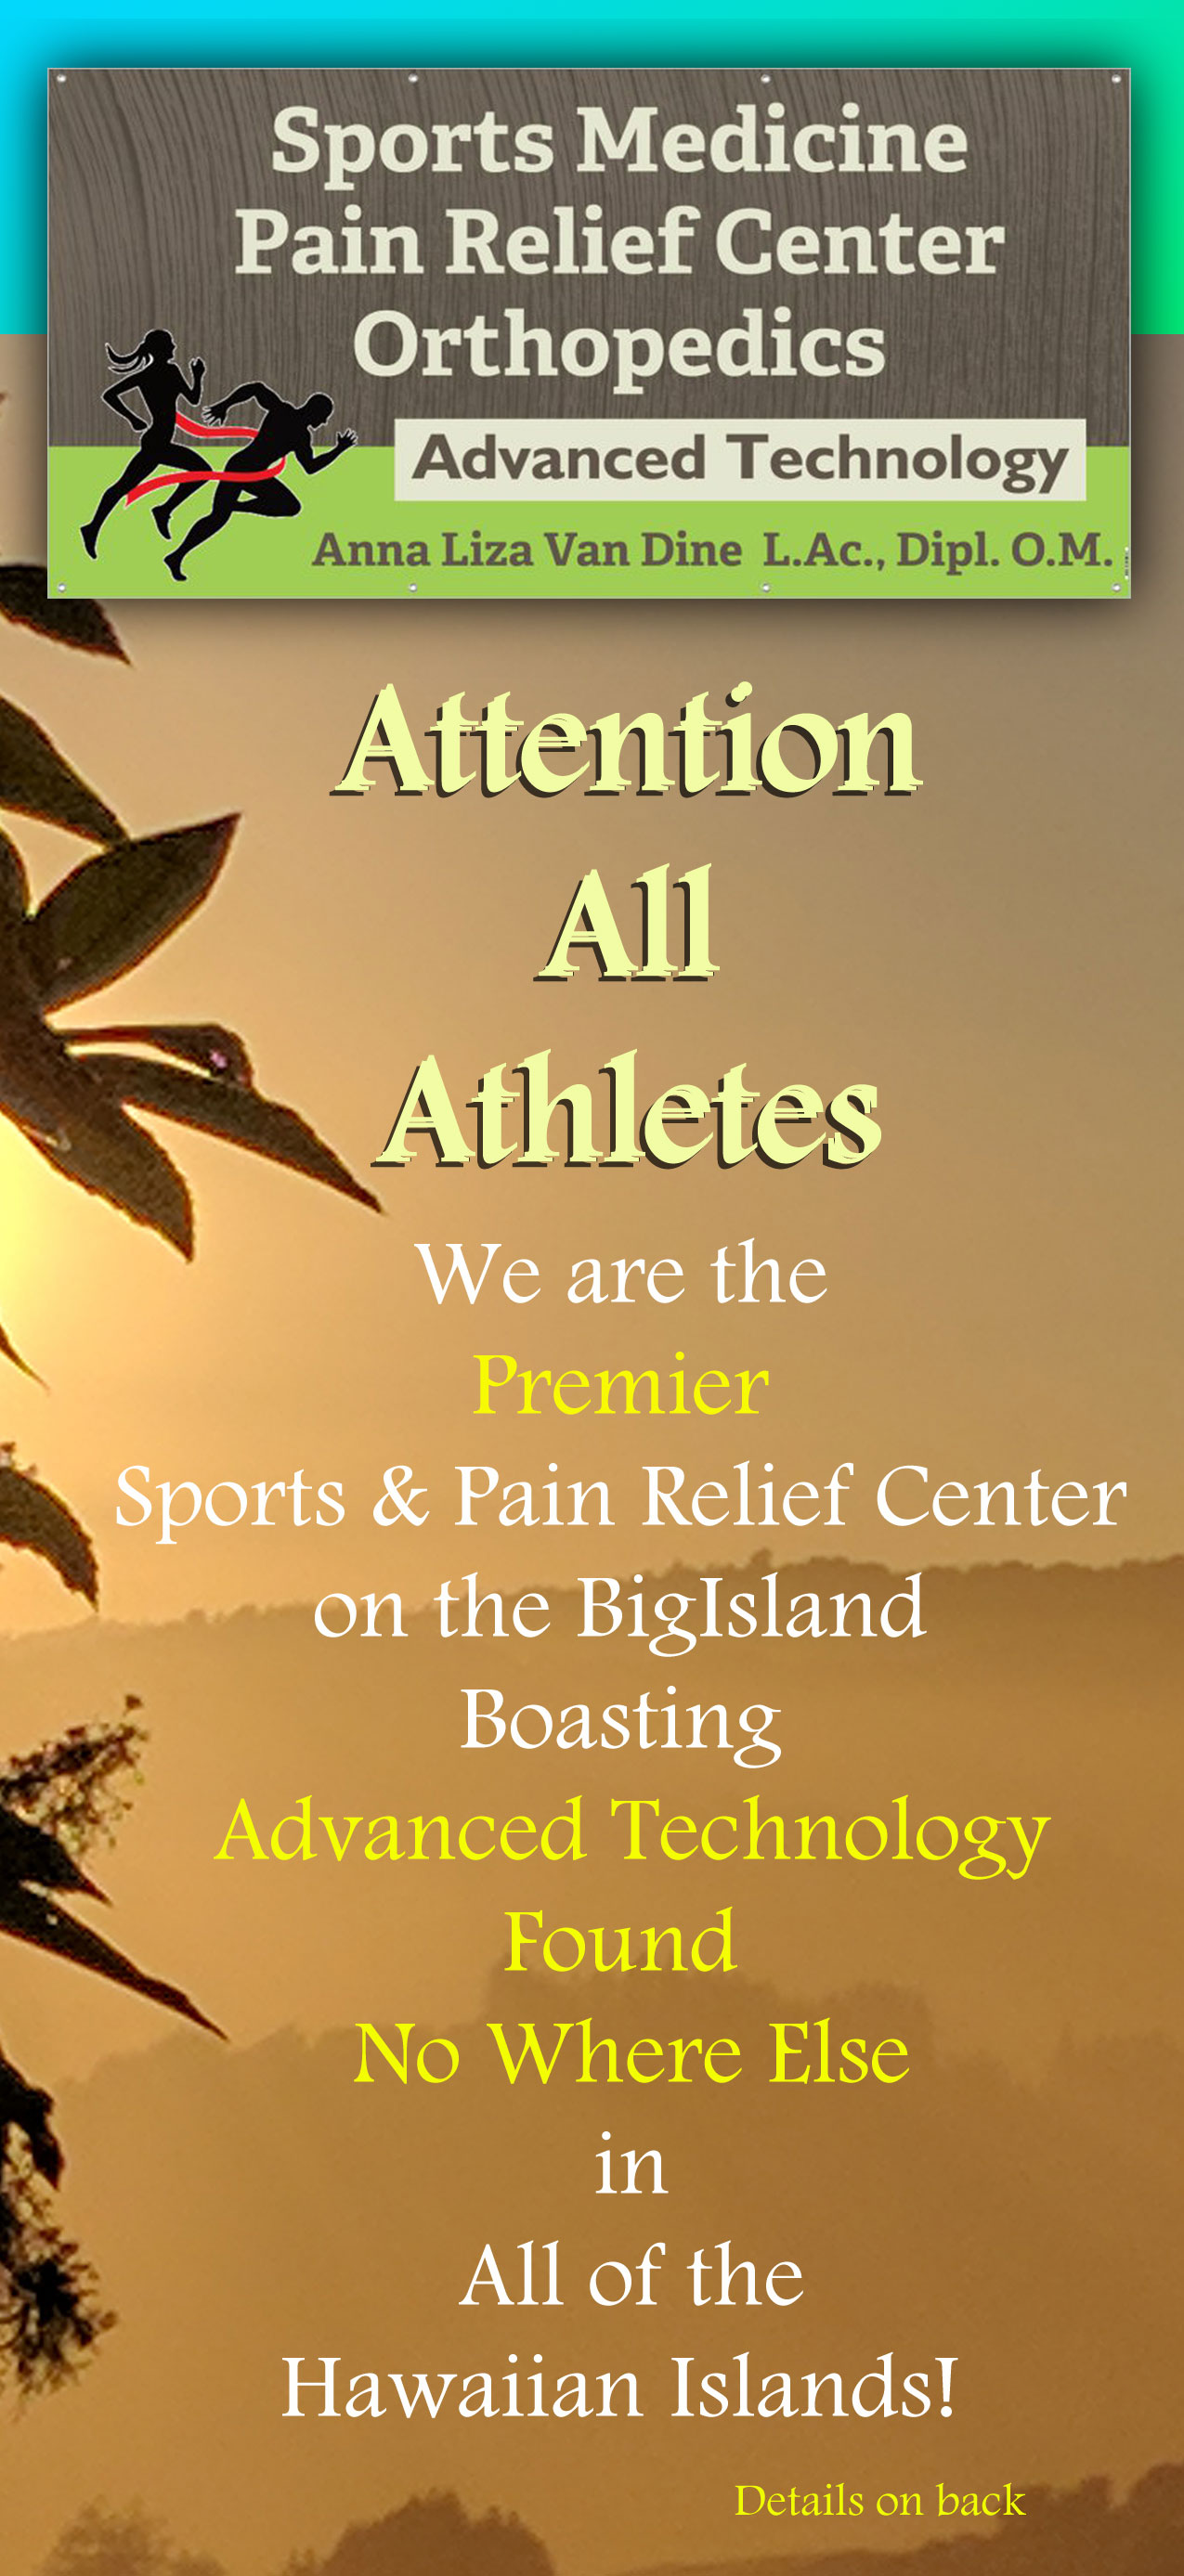 acupuncture, acupuncture kona, liza van dine, anna liza van dine, sports nedivine kona, pain relief center kona, othropedics kona, massage kona, kona hawaii, inflammation relief kona, ironman kona, ironman